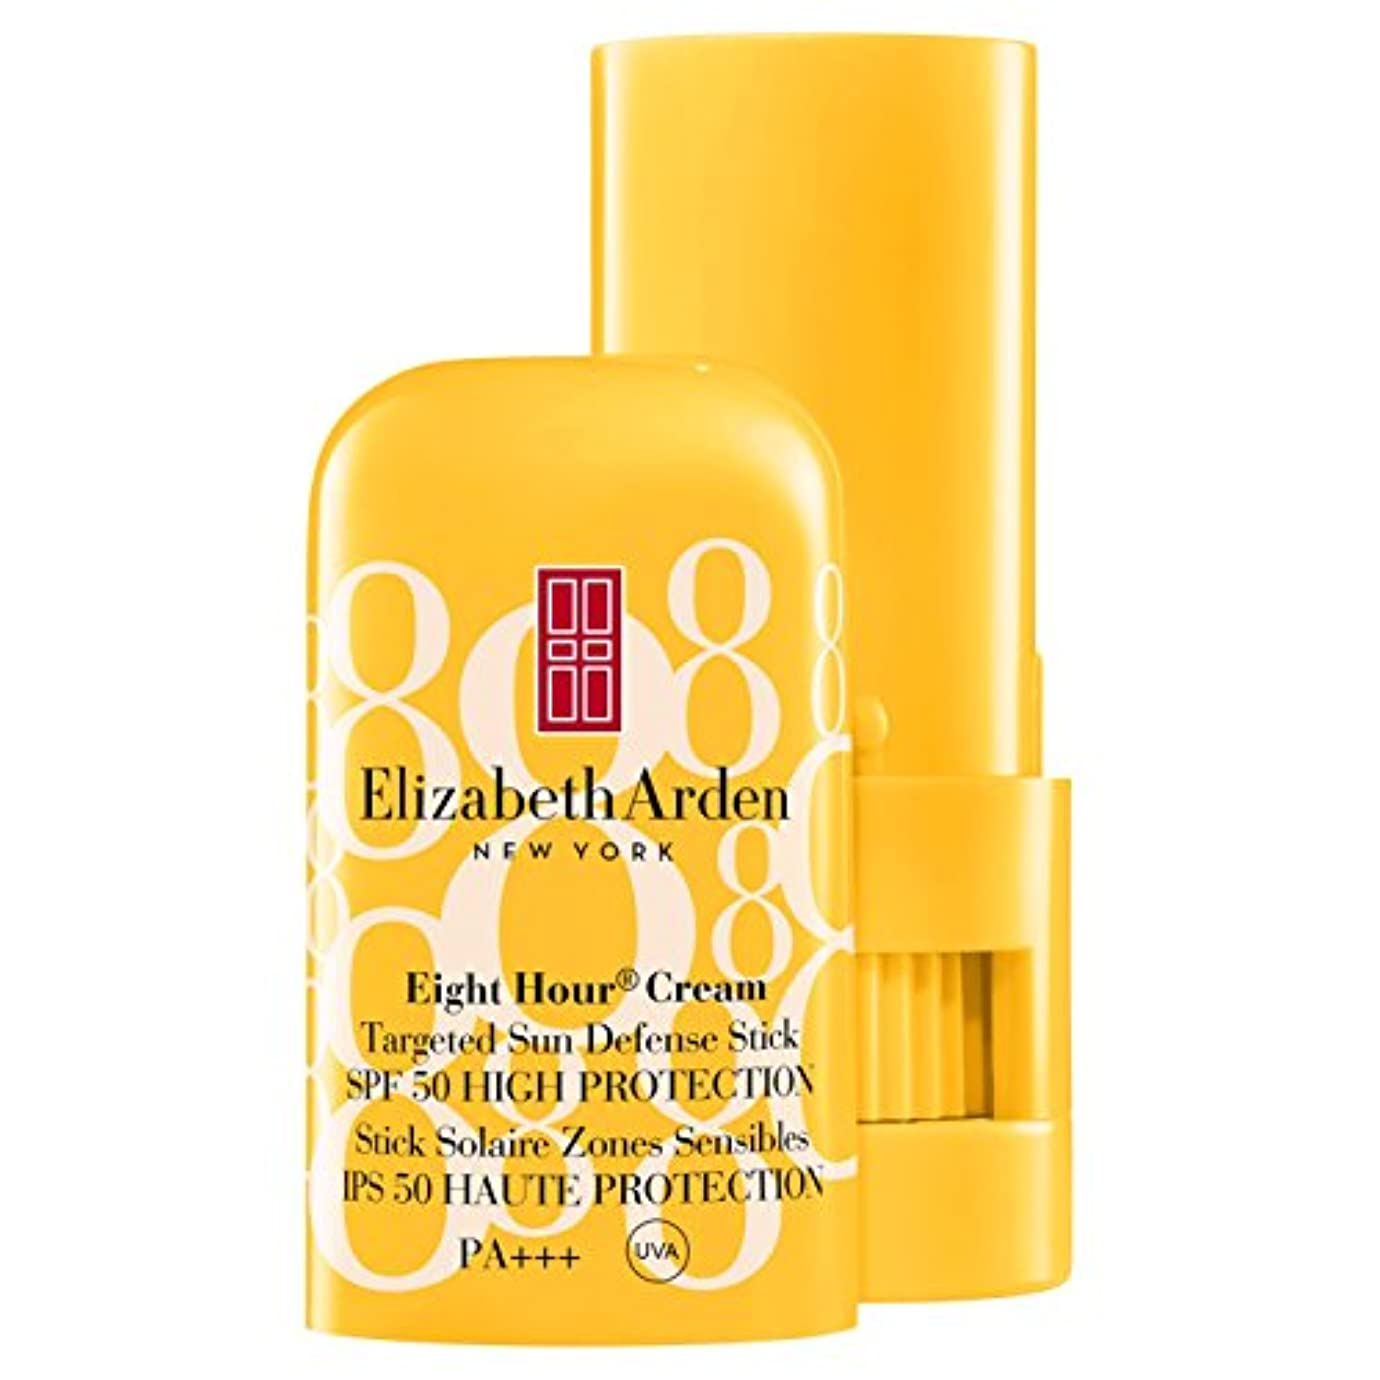 シュート売る救急車Elizabeth Arden Eight Hour? Cream Targeted Sun Defense Stick SPF50 High Protection 15ml (Pack of 6) - エリザベスアーデン...